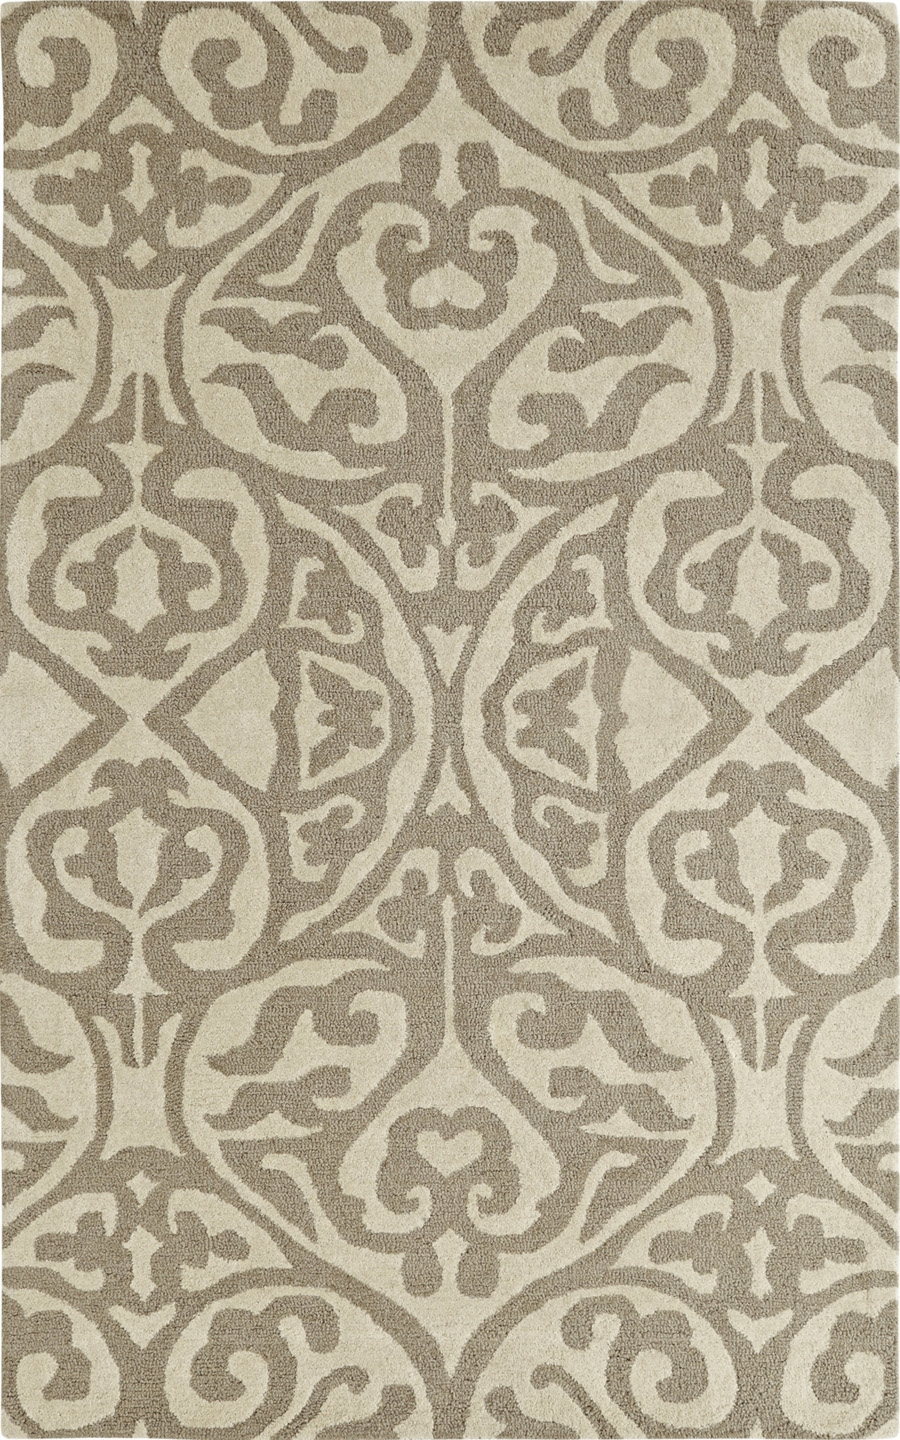 Dynamic Palace 5545 919 Silver Ivory Rug